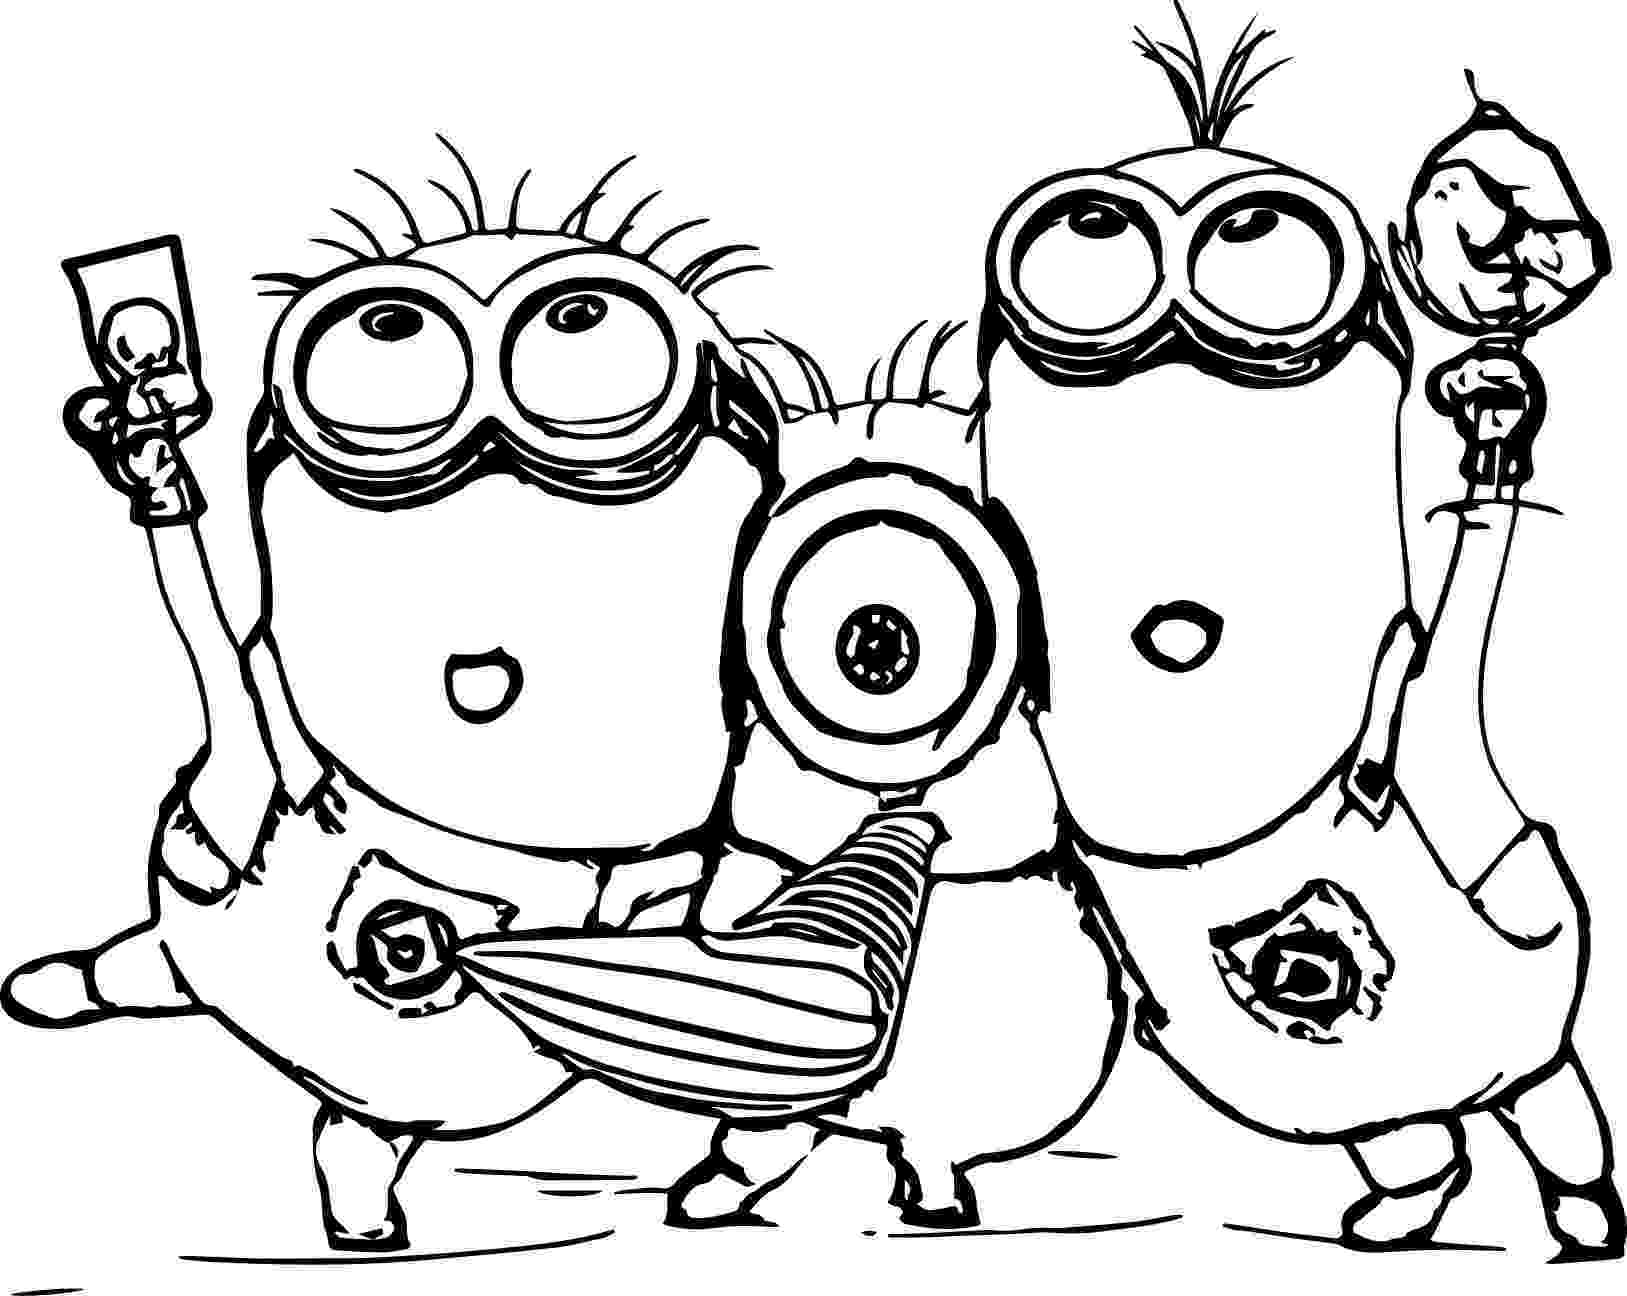 minions colouring pictures minion coloring pages best coloring pages for kids pictures minions colouring 1 1